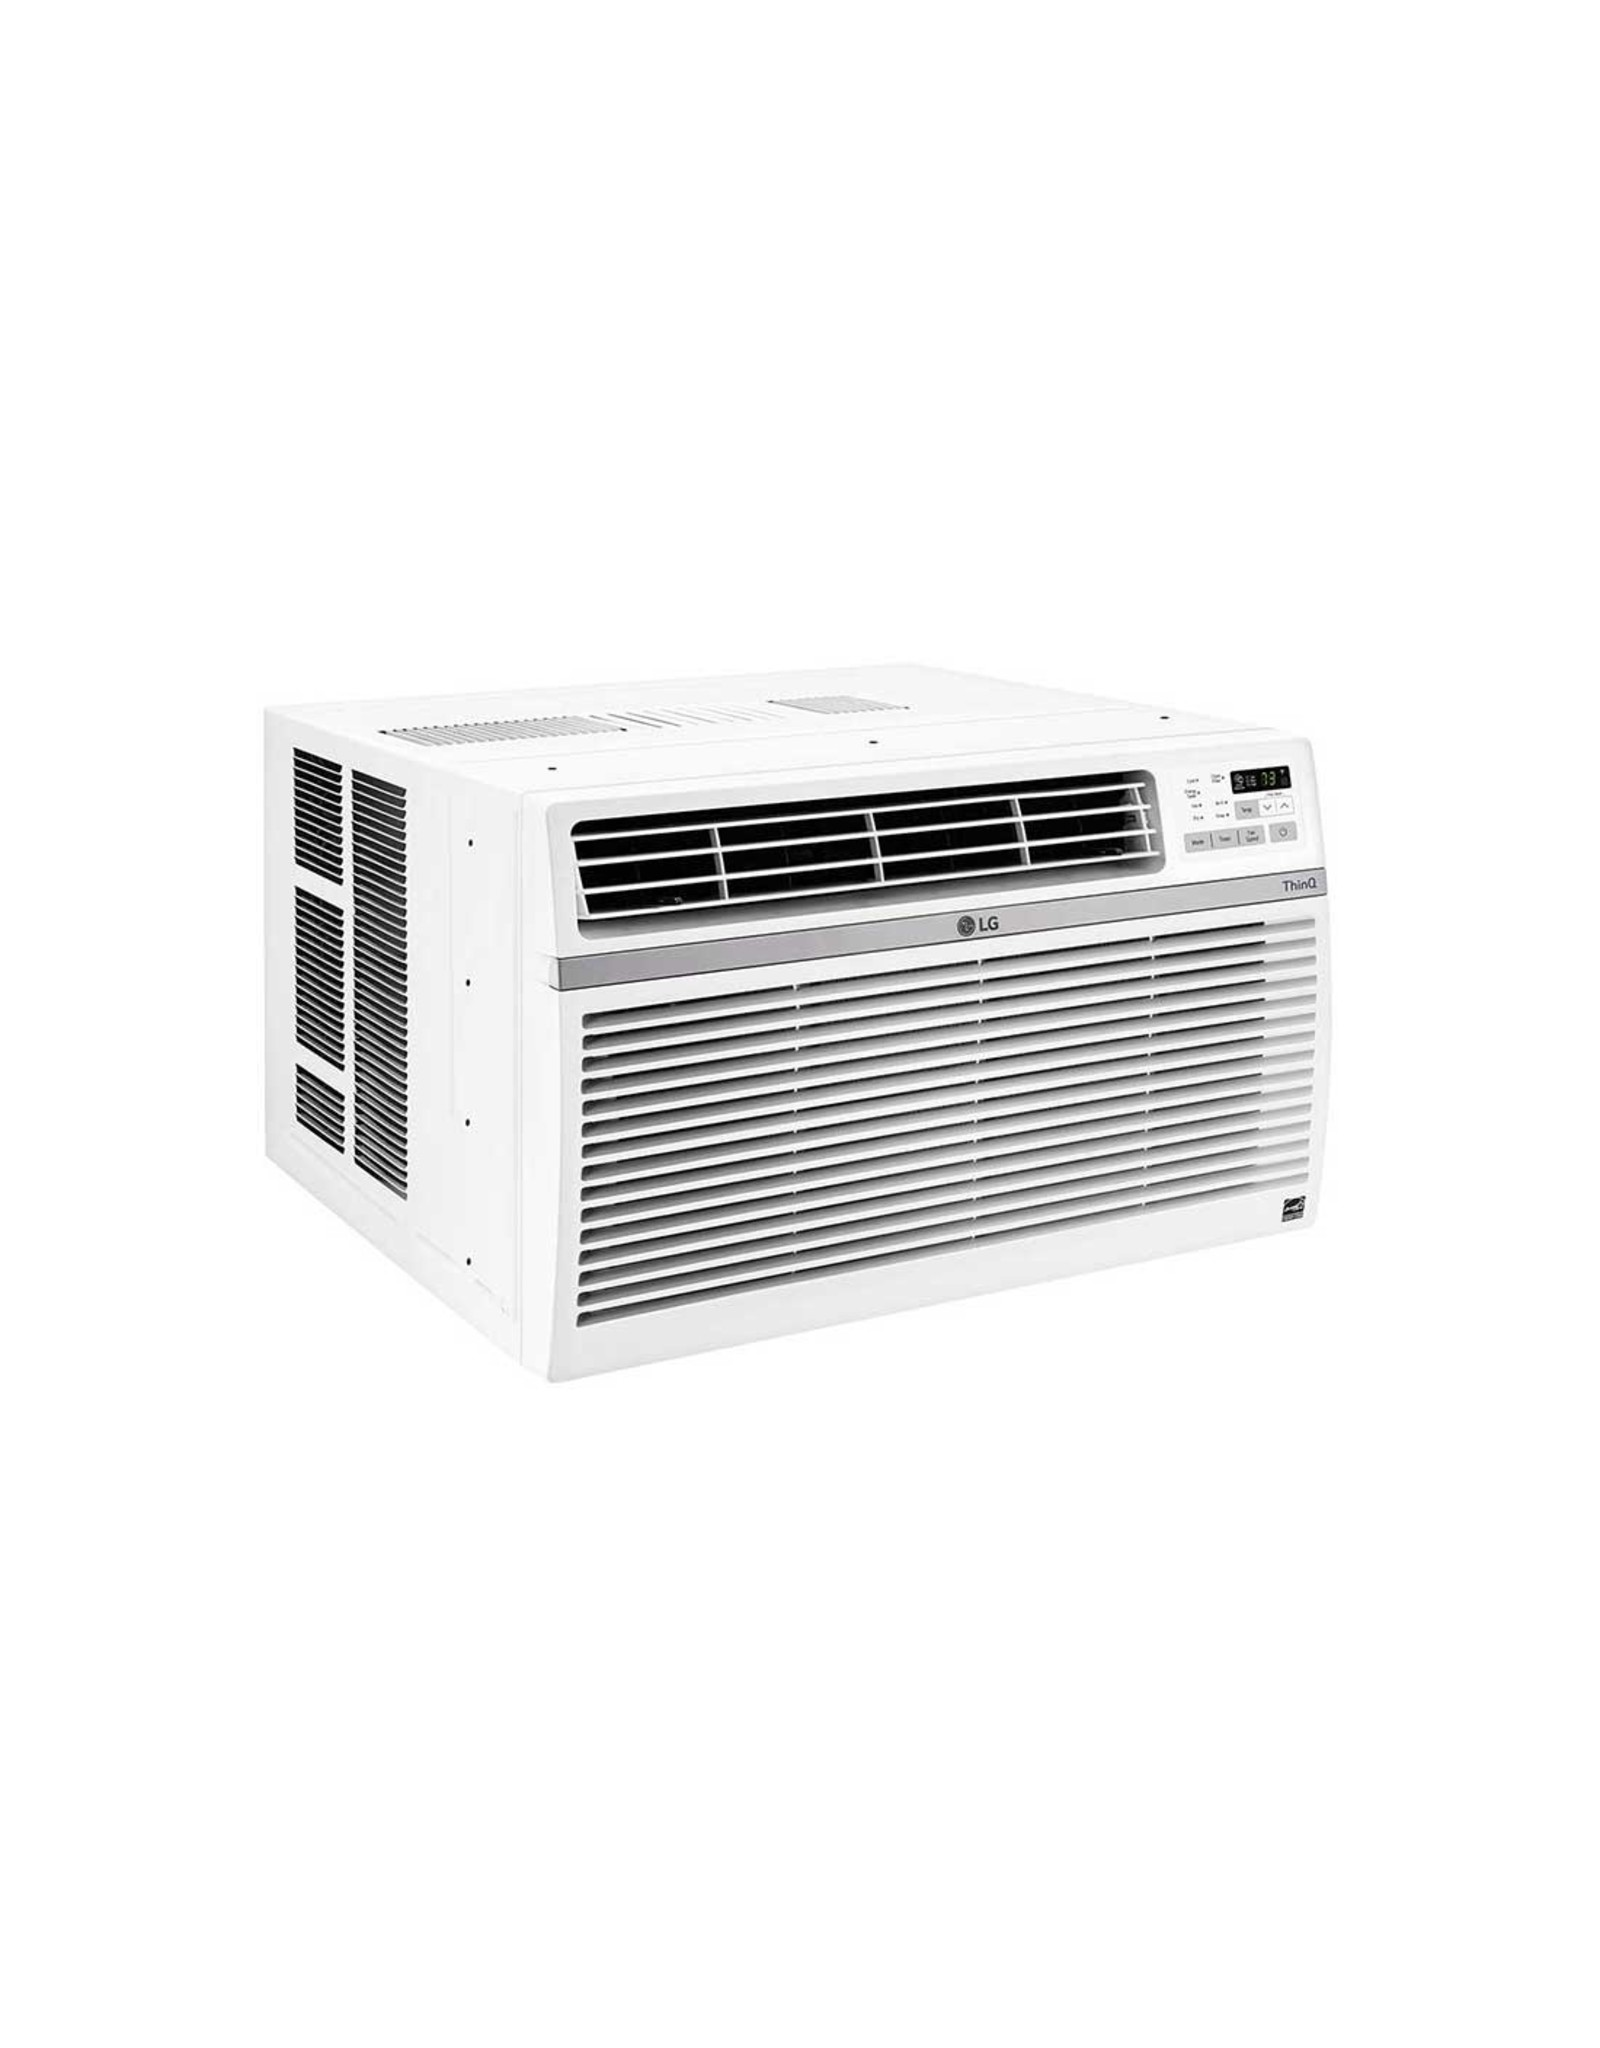 LG Electronics 12,000 BTU Window Smart (Wi-Fi) Air Conditioner with Remote, ENERGY STAR in White